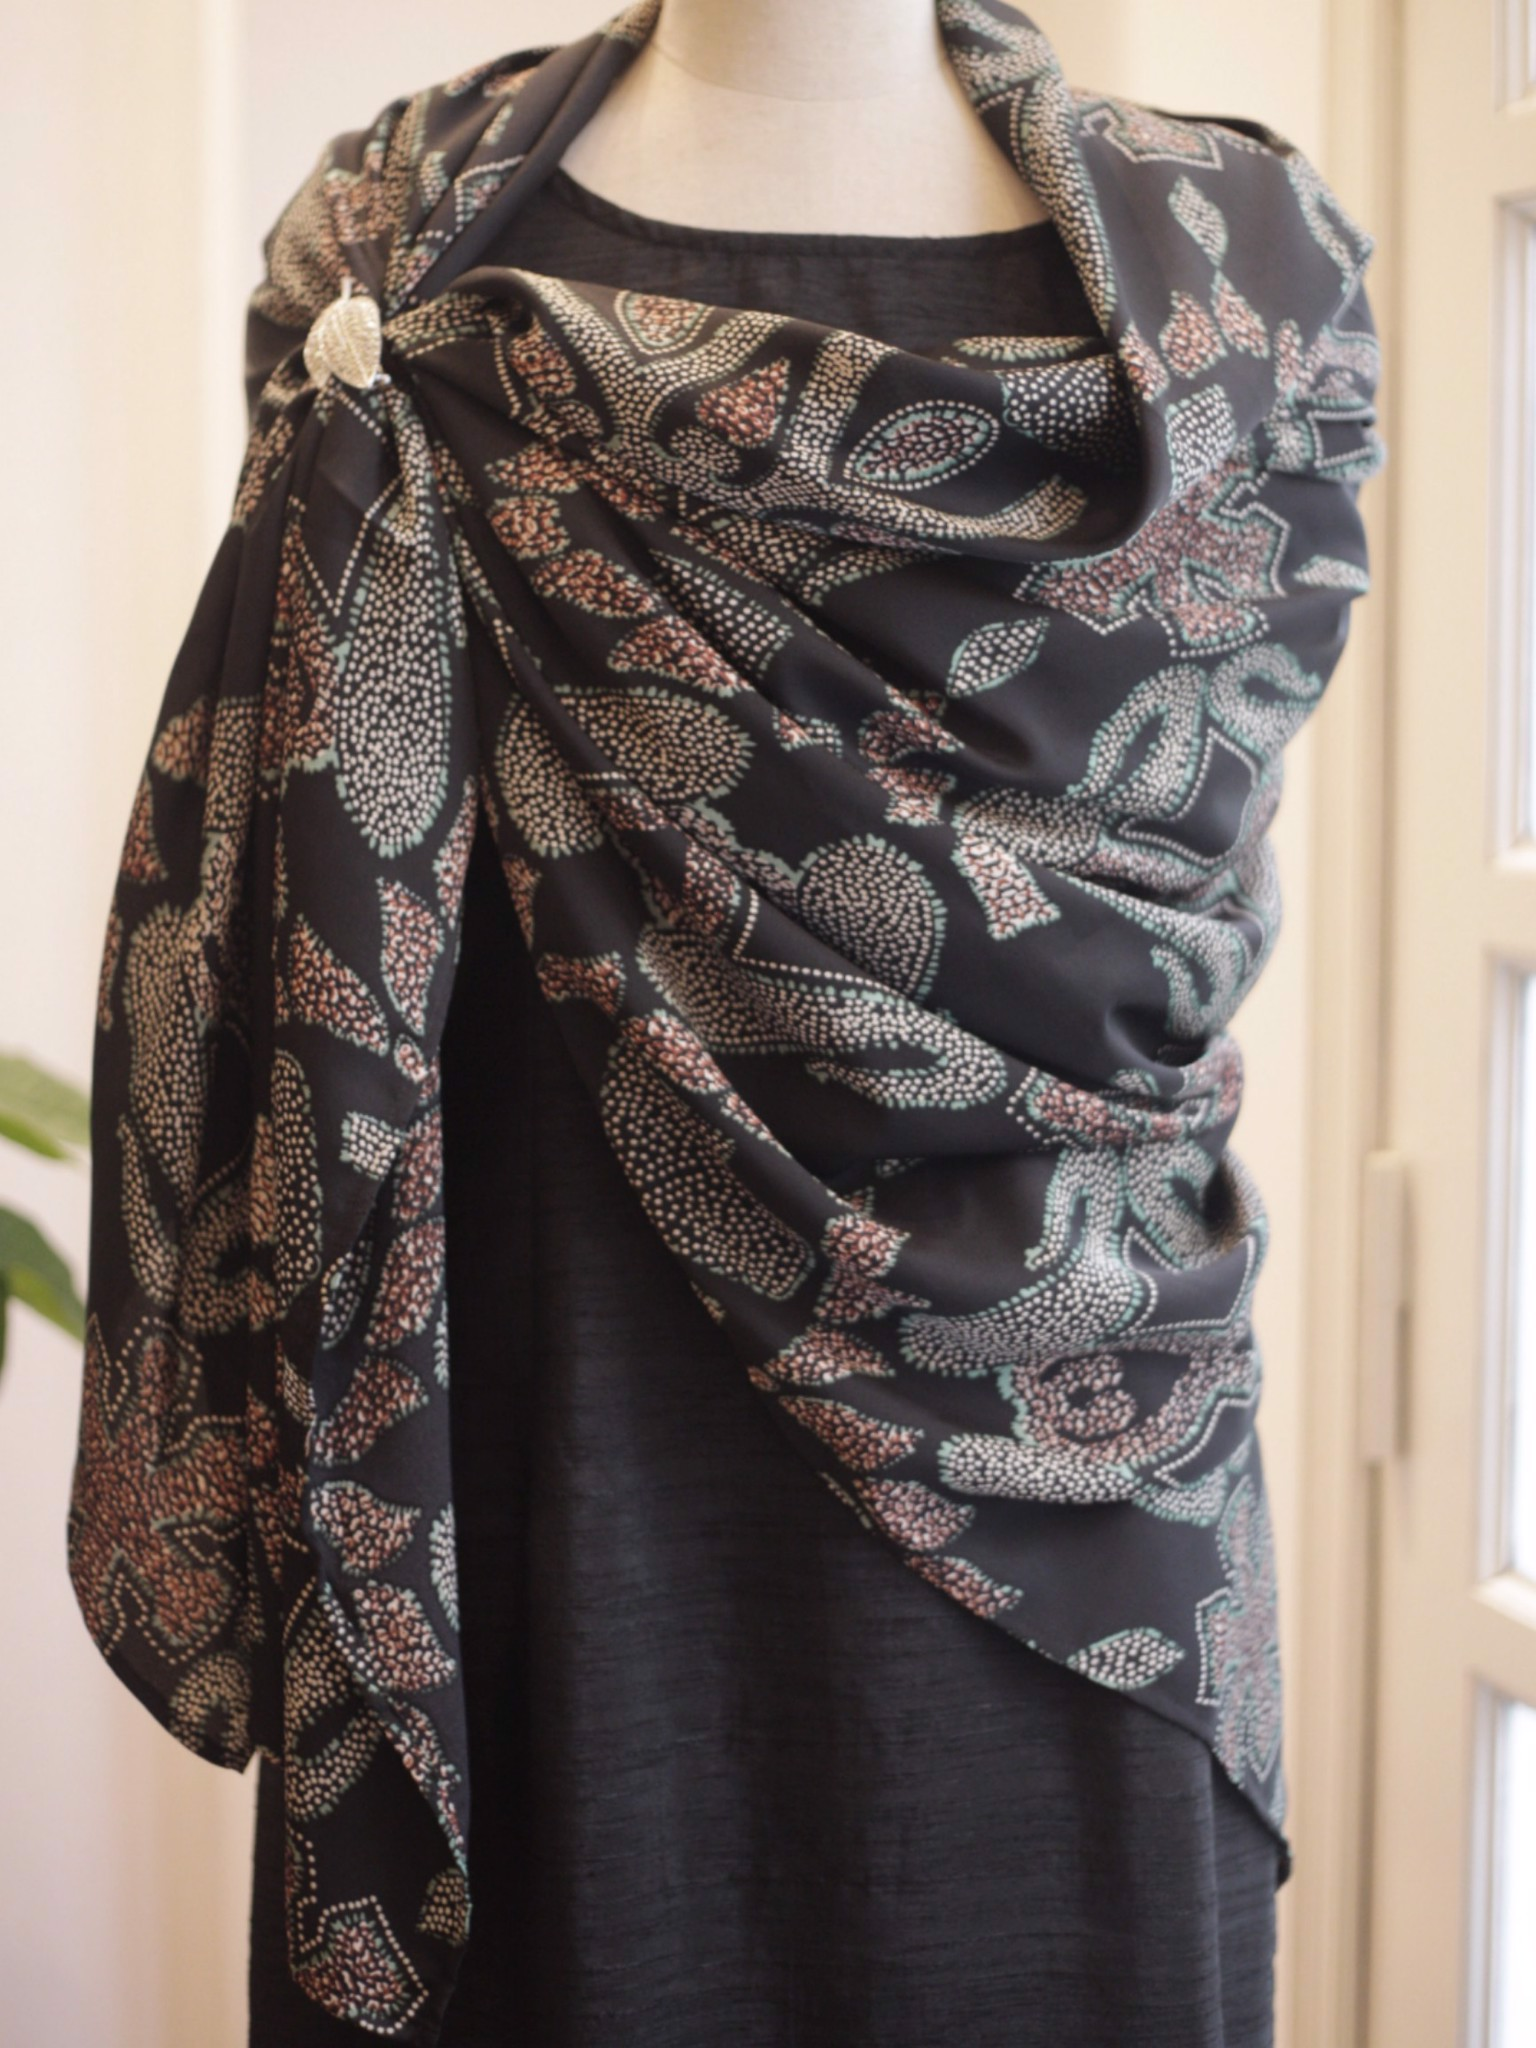 SILK Single layer Scarf 150 x 150